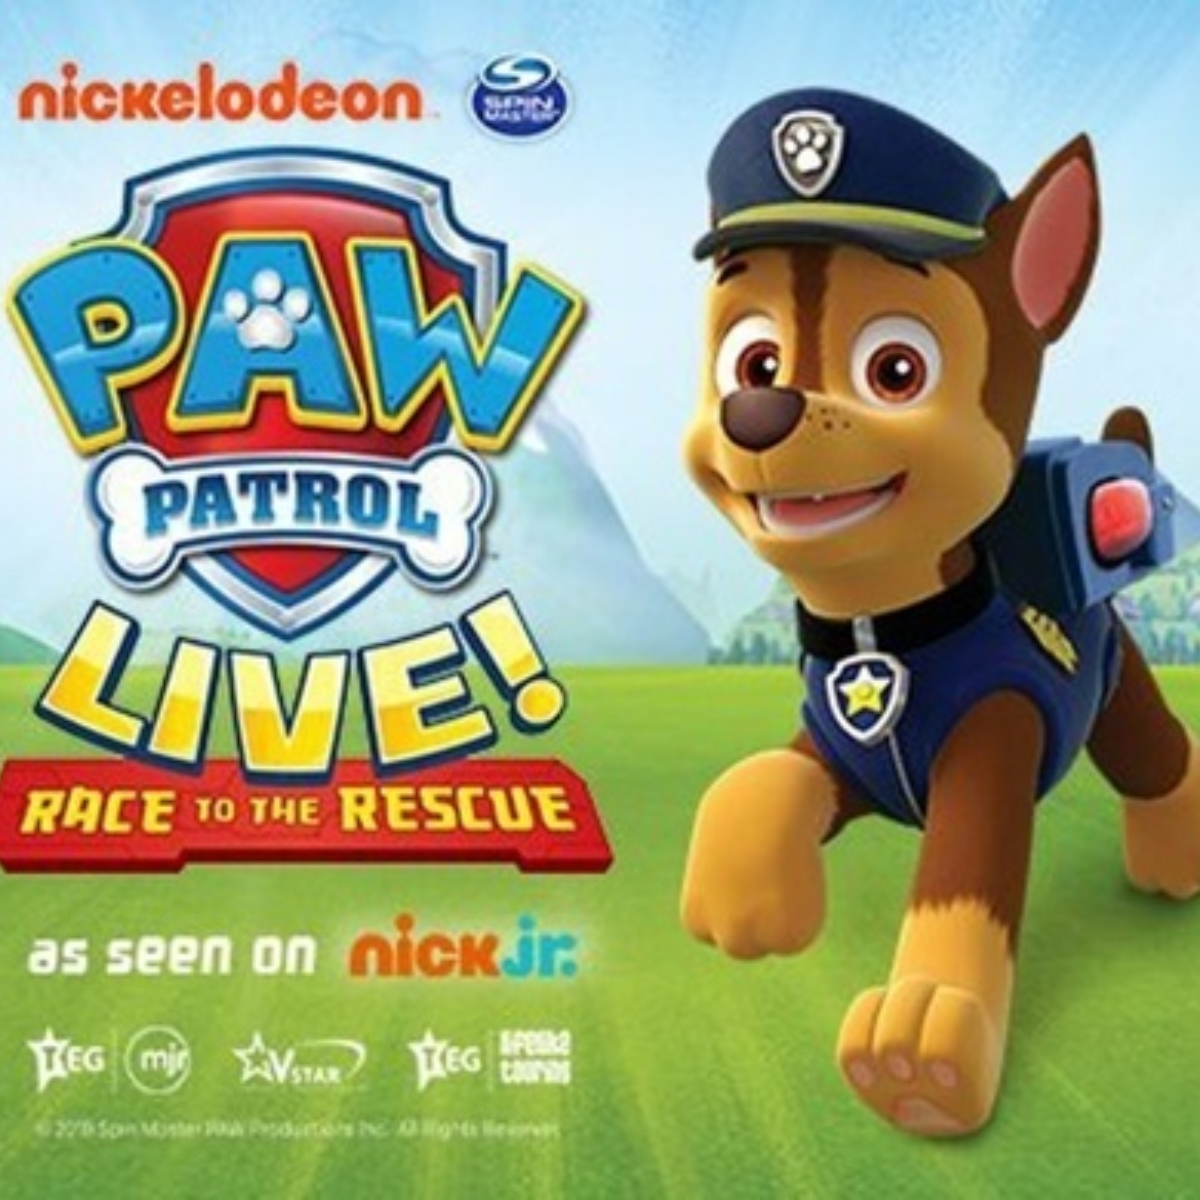 PAW PATROL LIVE! - Race to the Rescue (Edinburgh) Images